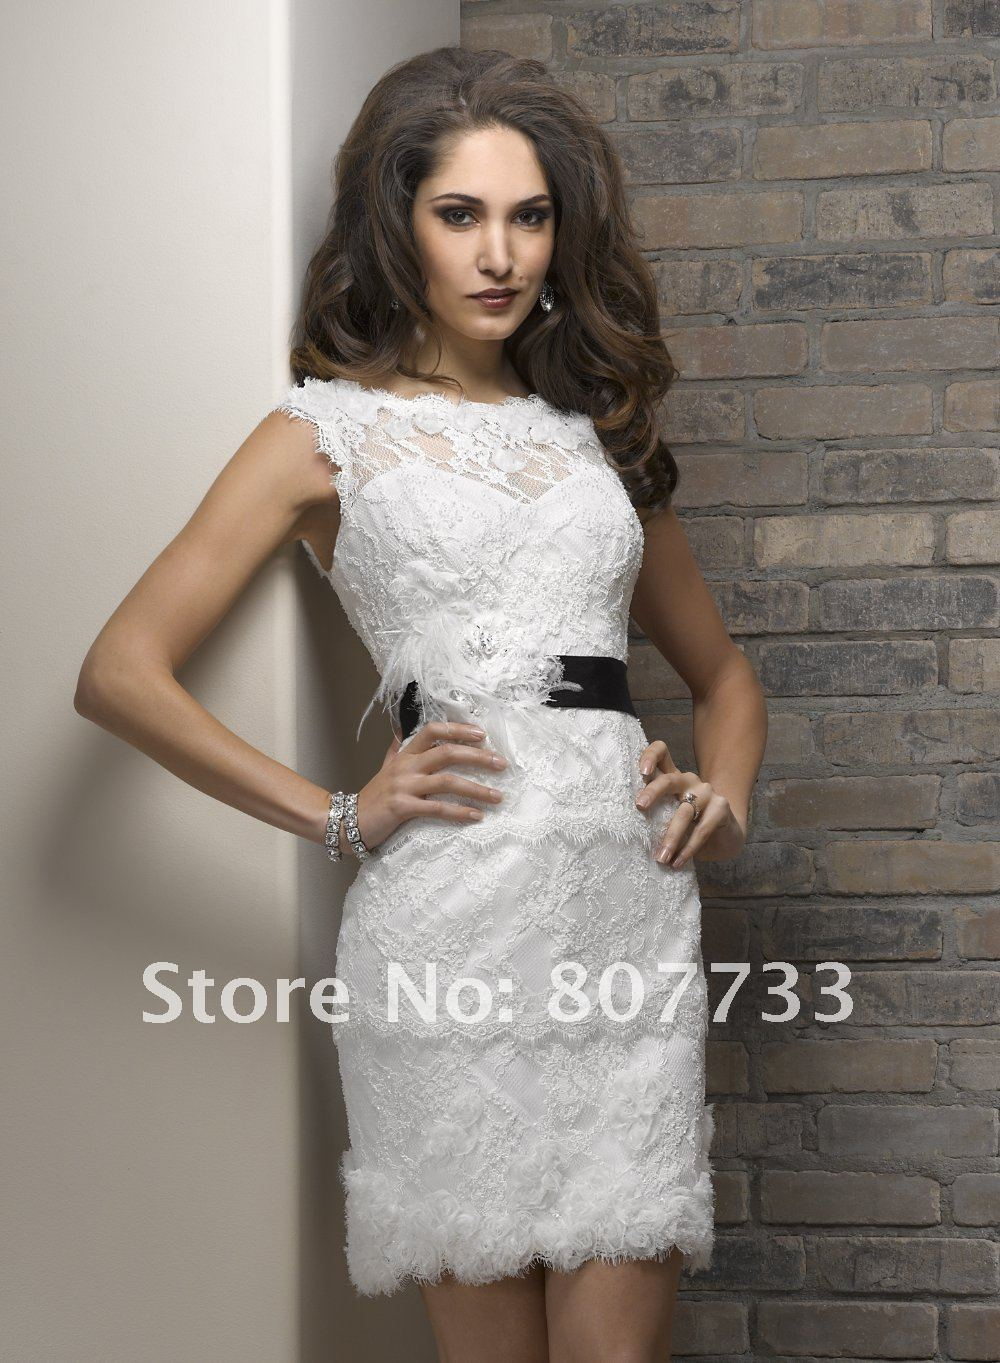 f84844143a5b1 Free Shipping!!!Gorgeous lace fabric elegant cap sleeves open back sexy  short wedding dresses